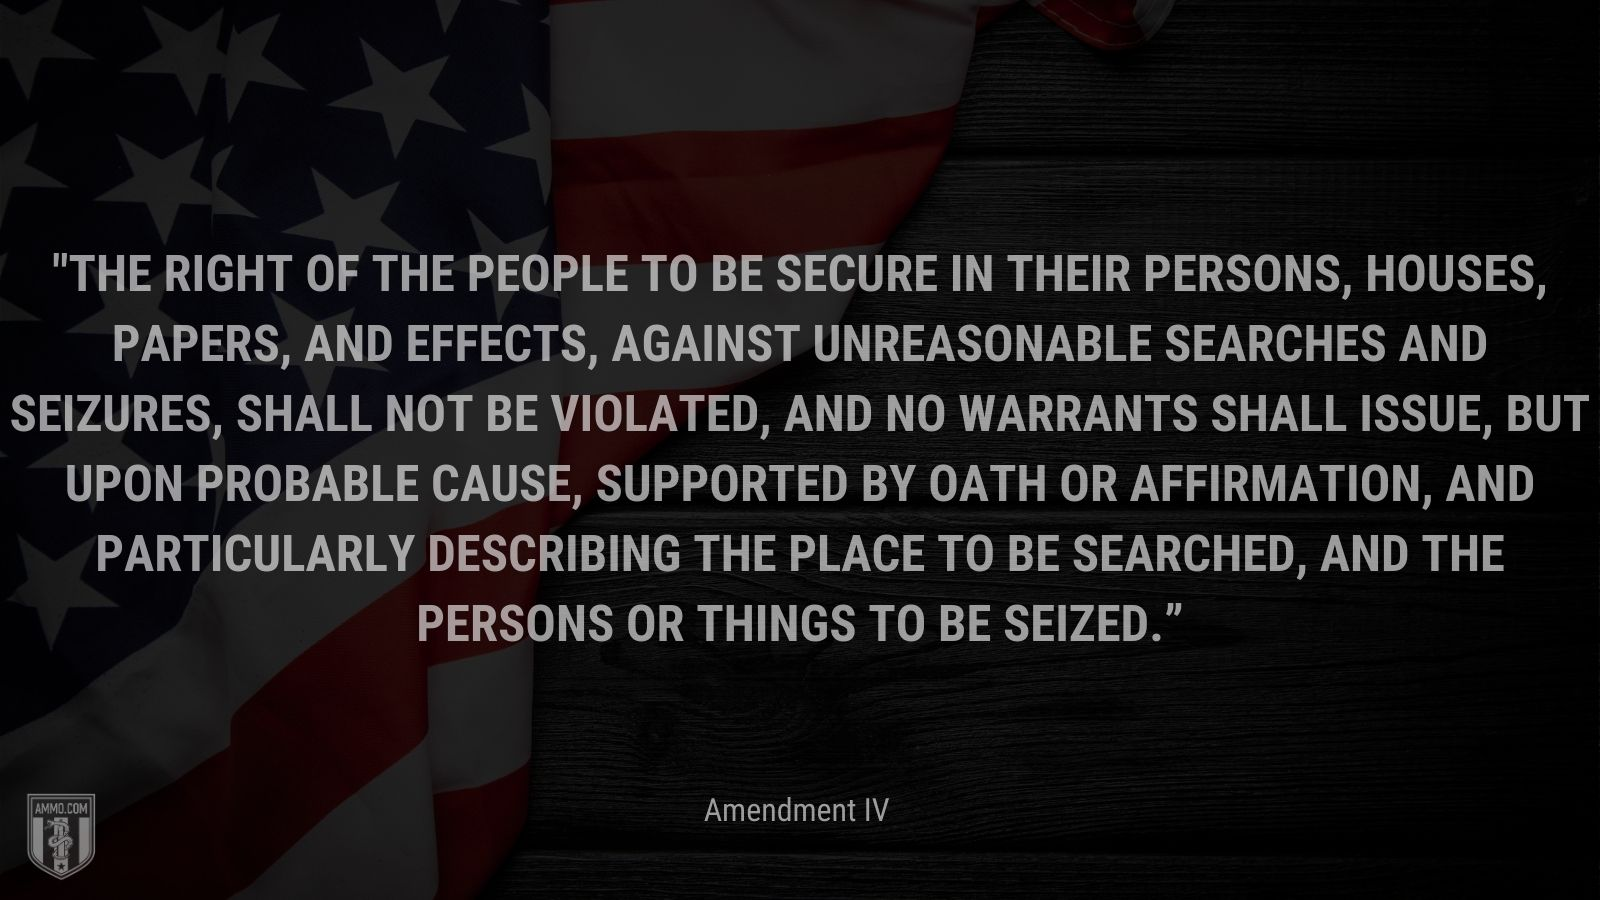 """""""The right of the people to be secure in their persons, houses, papers, and effects, against unreasonable searches and seizures, shall not be violated, and no Warrants shall issue, but upon probable cause, supported by Oath or affirmation, and particularly describing the place to be searched, and the persons or things to be seized."""" - Amendment IV, The U.S. Bill of Rights"""